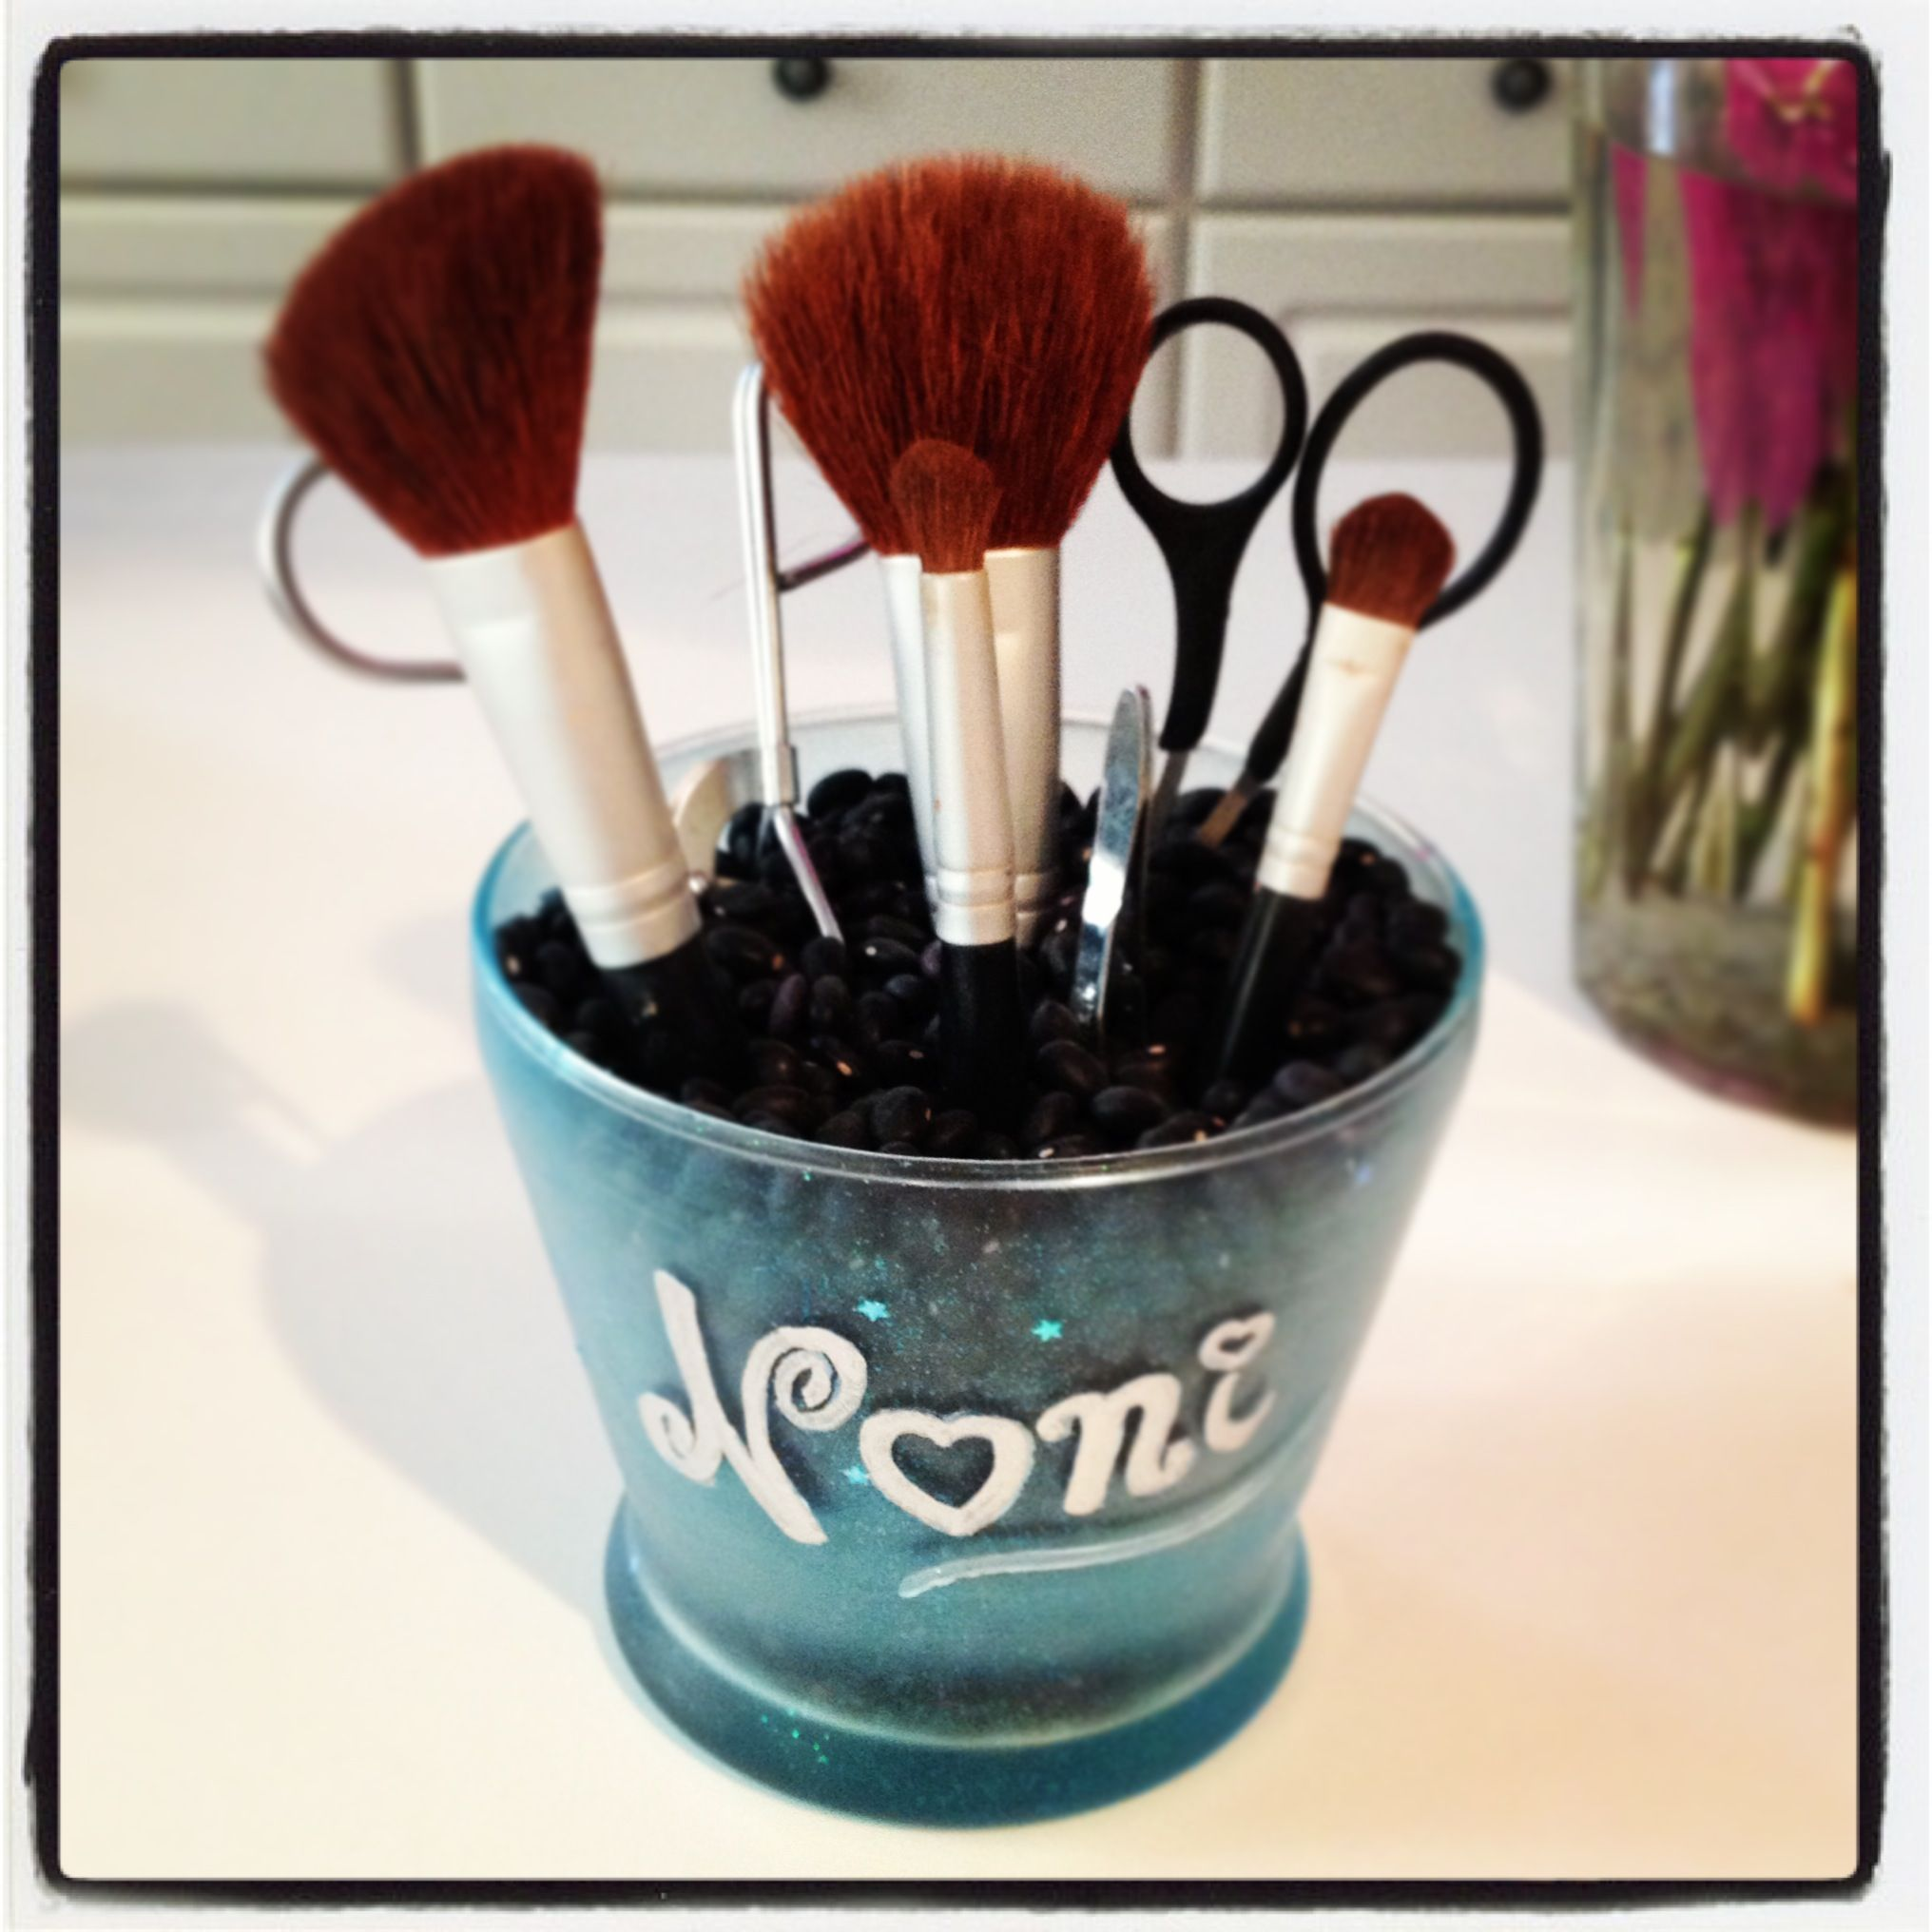 Makeup brush holder 1 candle holder, Sea glass effect